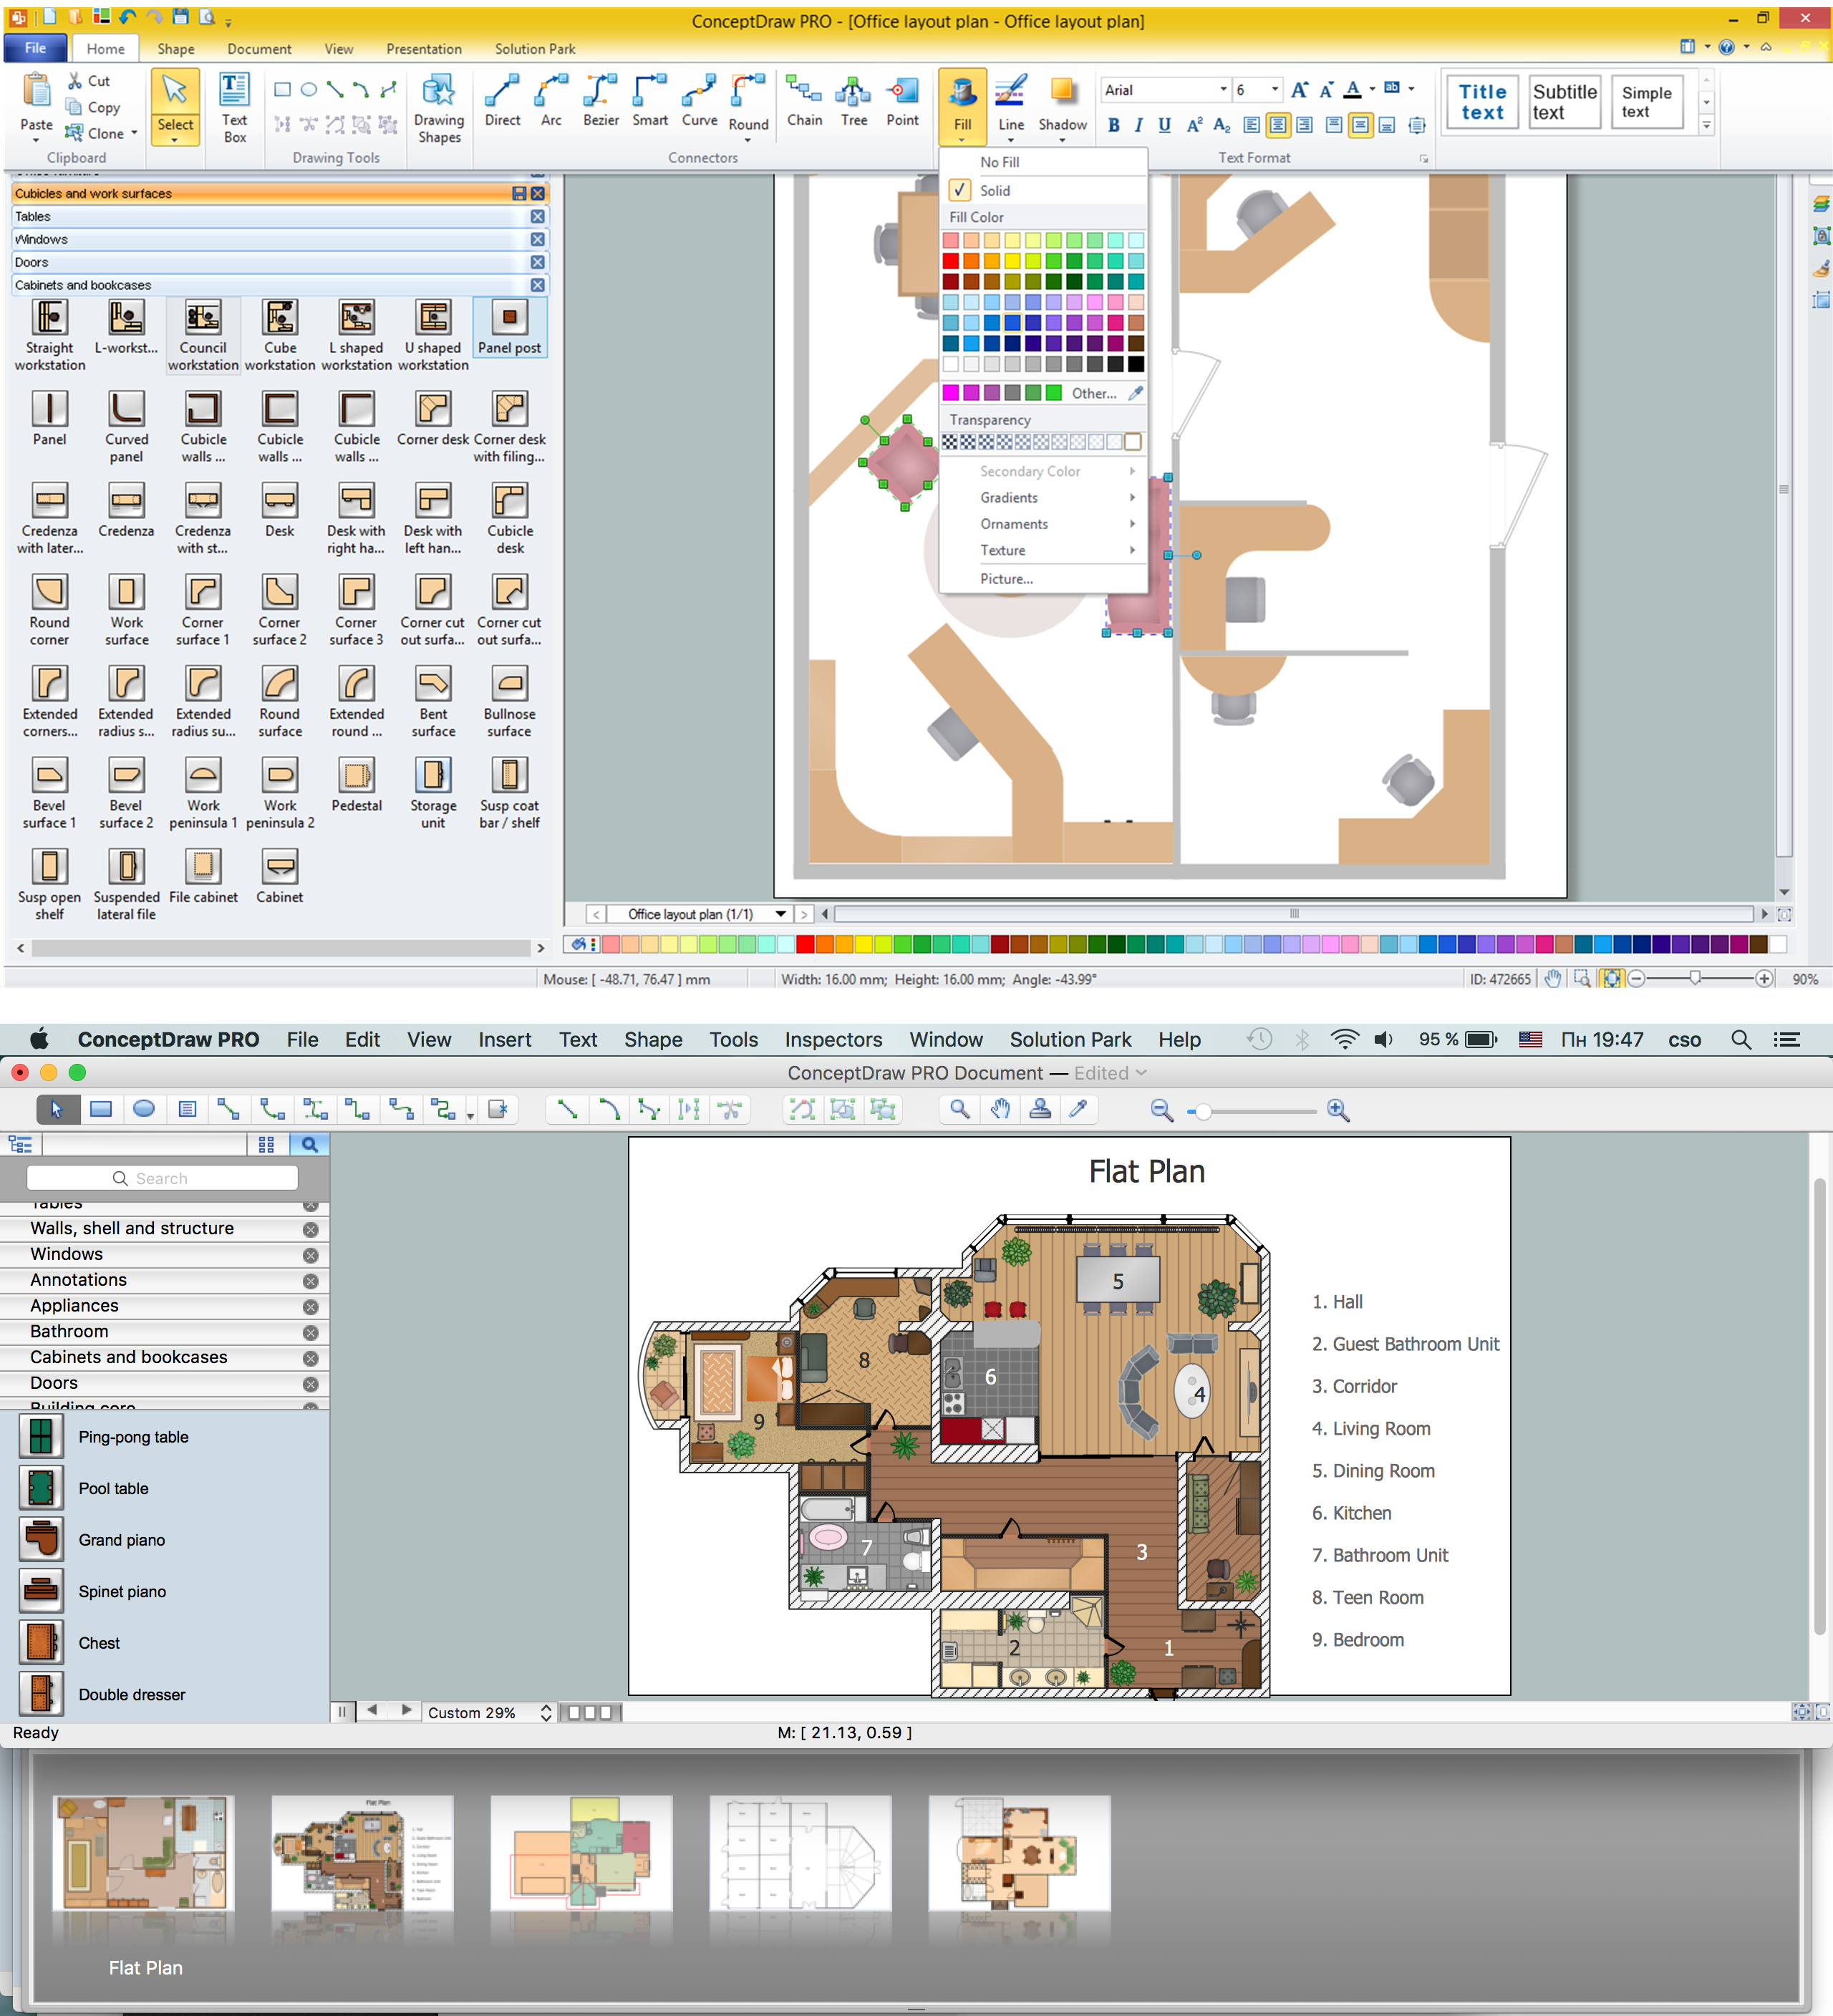 Plant layout plans building drawing software for design Building drawing software